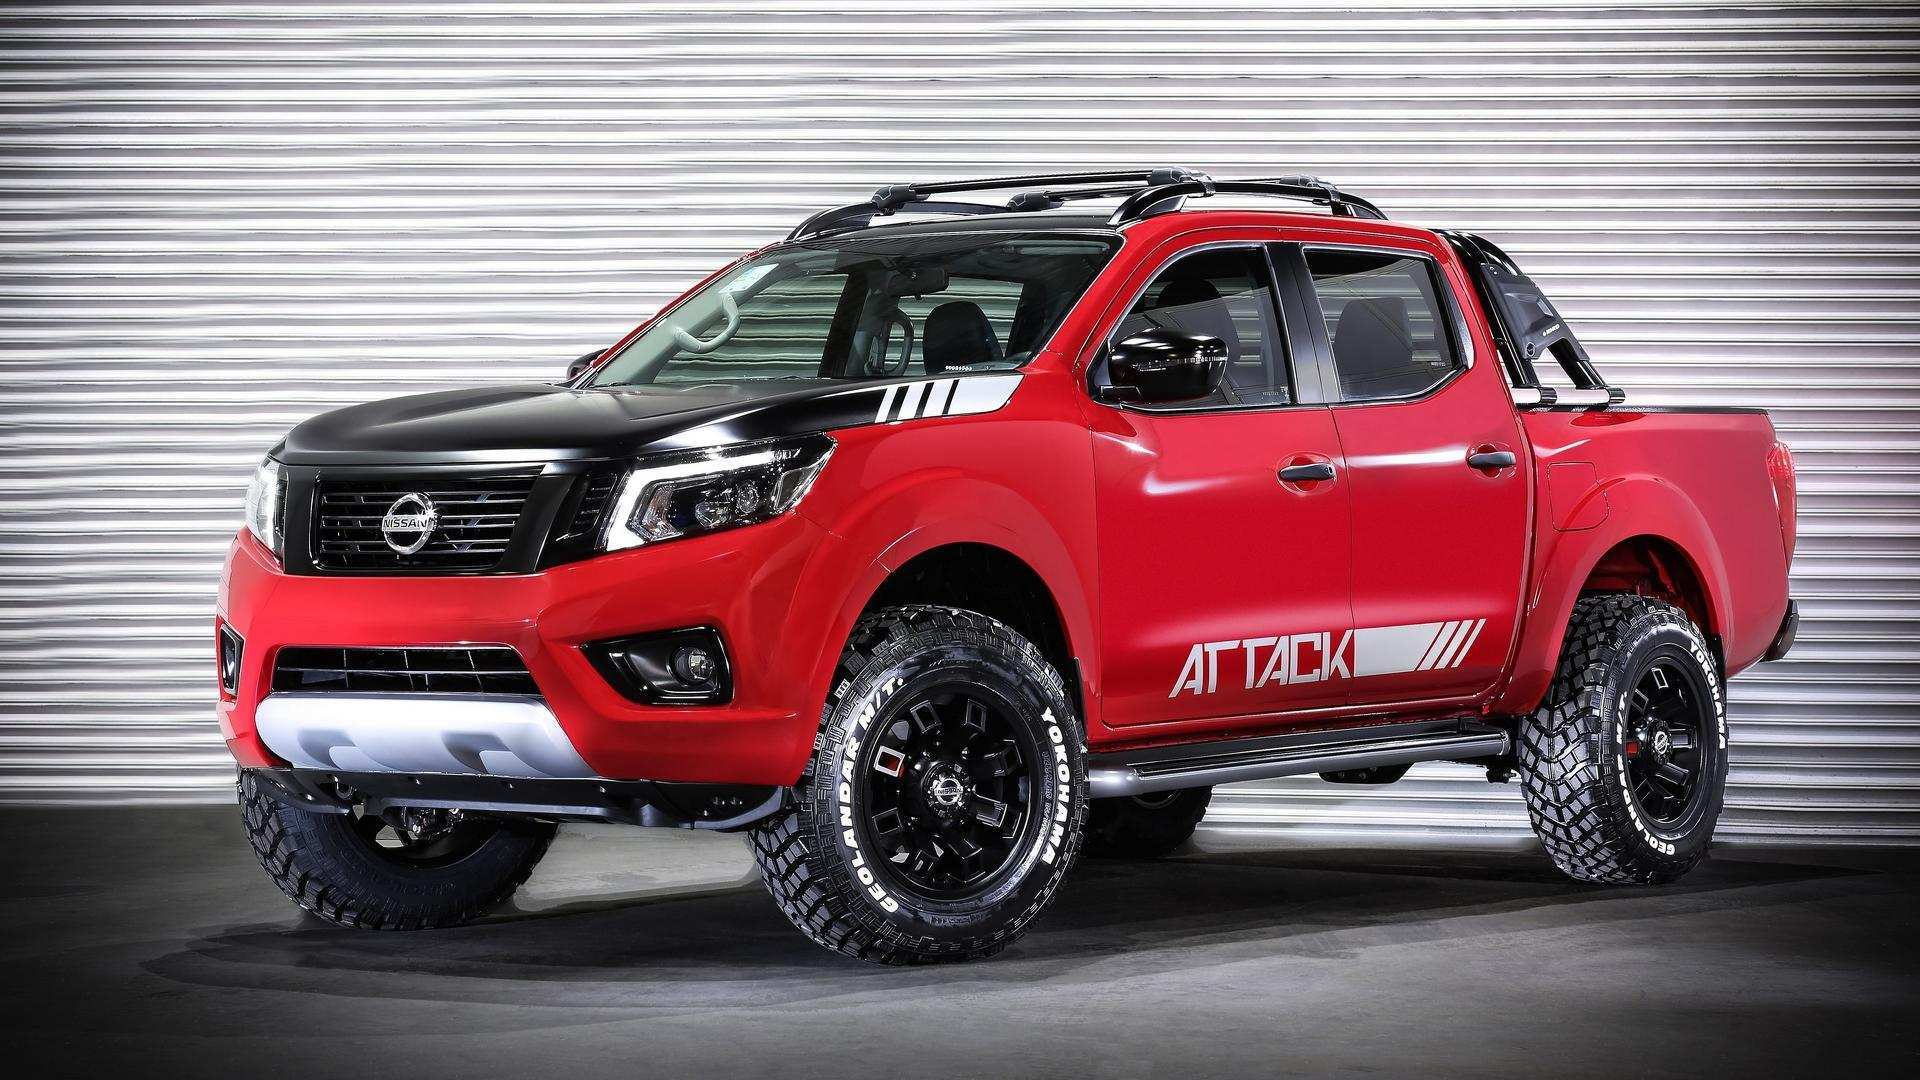 69 Best Review 2020 Nissan Frontier New Concept Pricing by 2020 Nissan Frontier New Concept